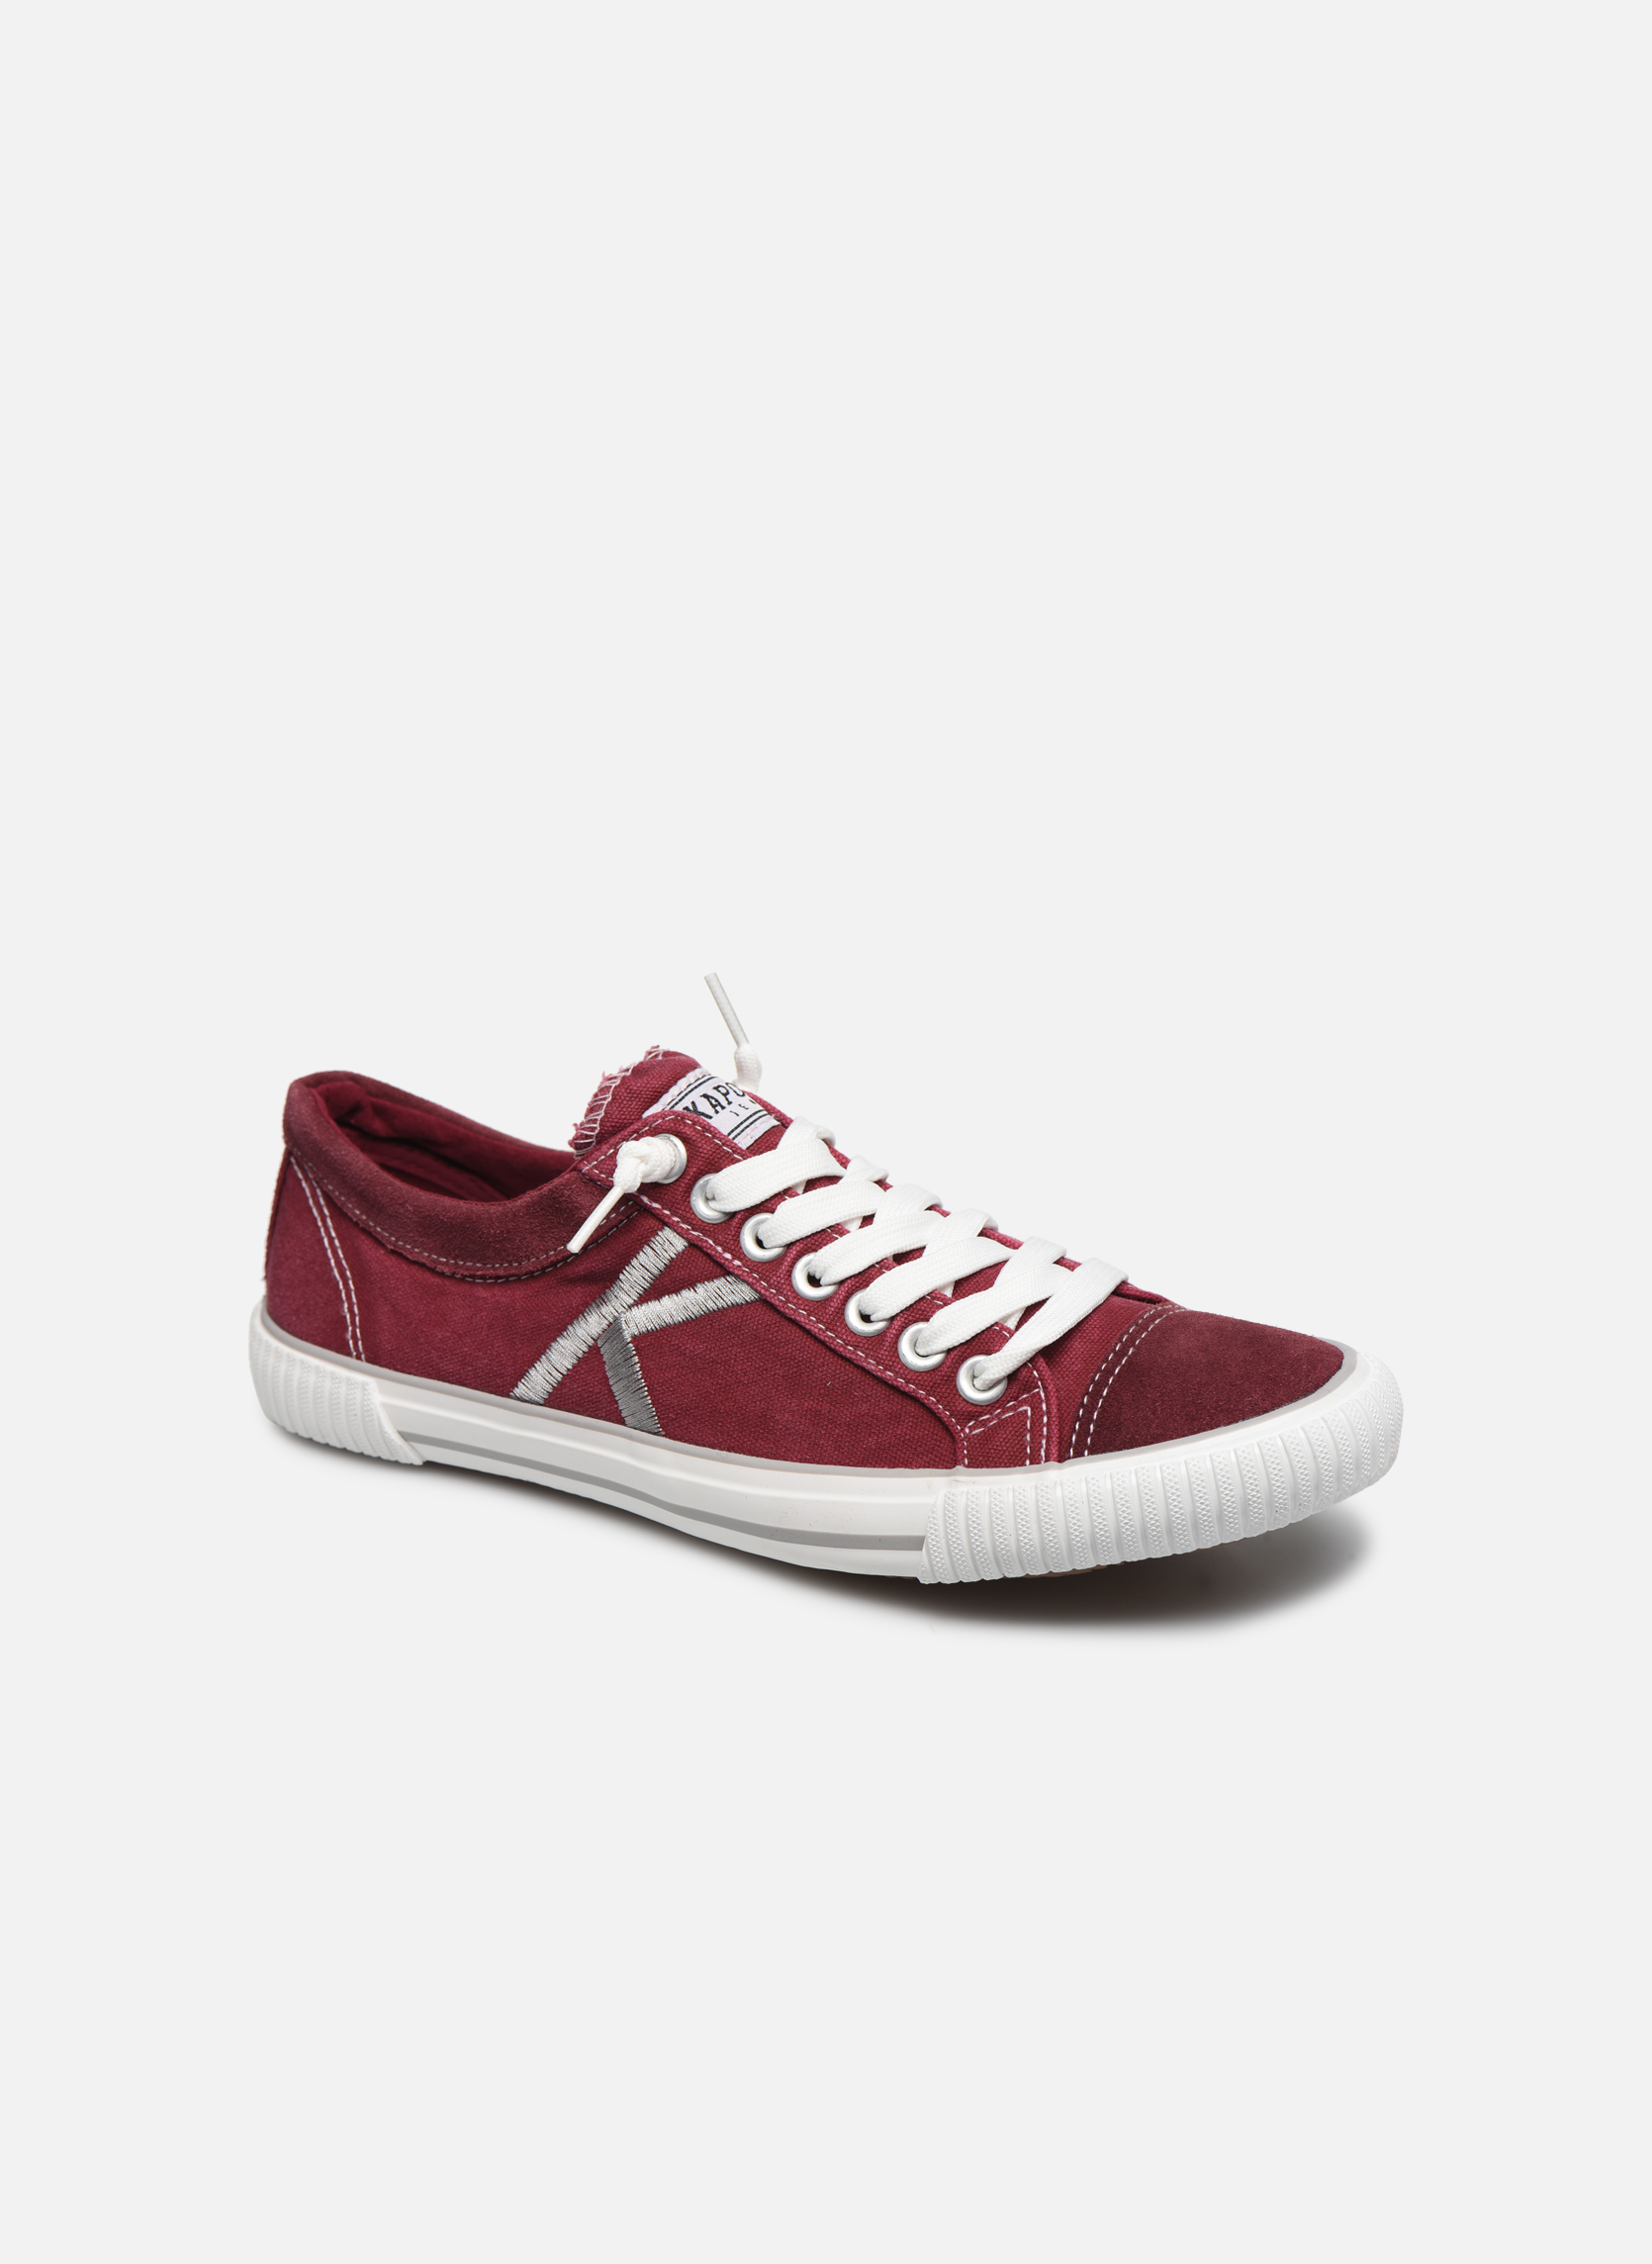 Sneakers Kaporal Rood